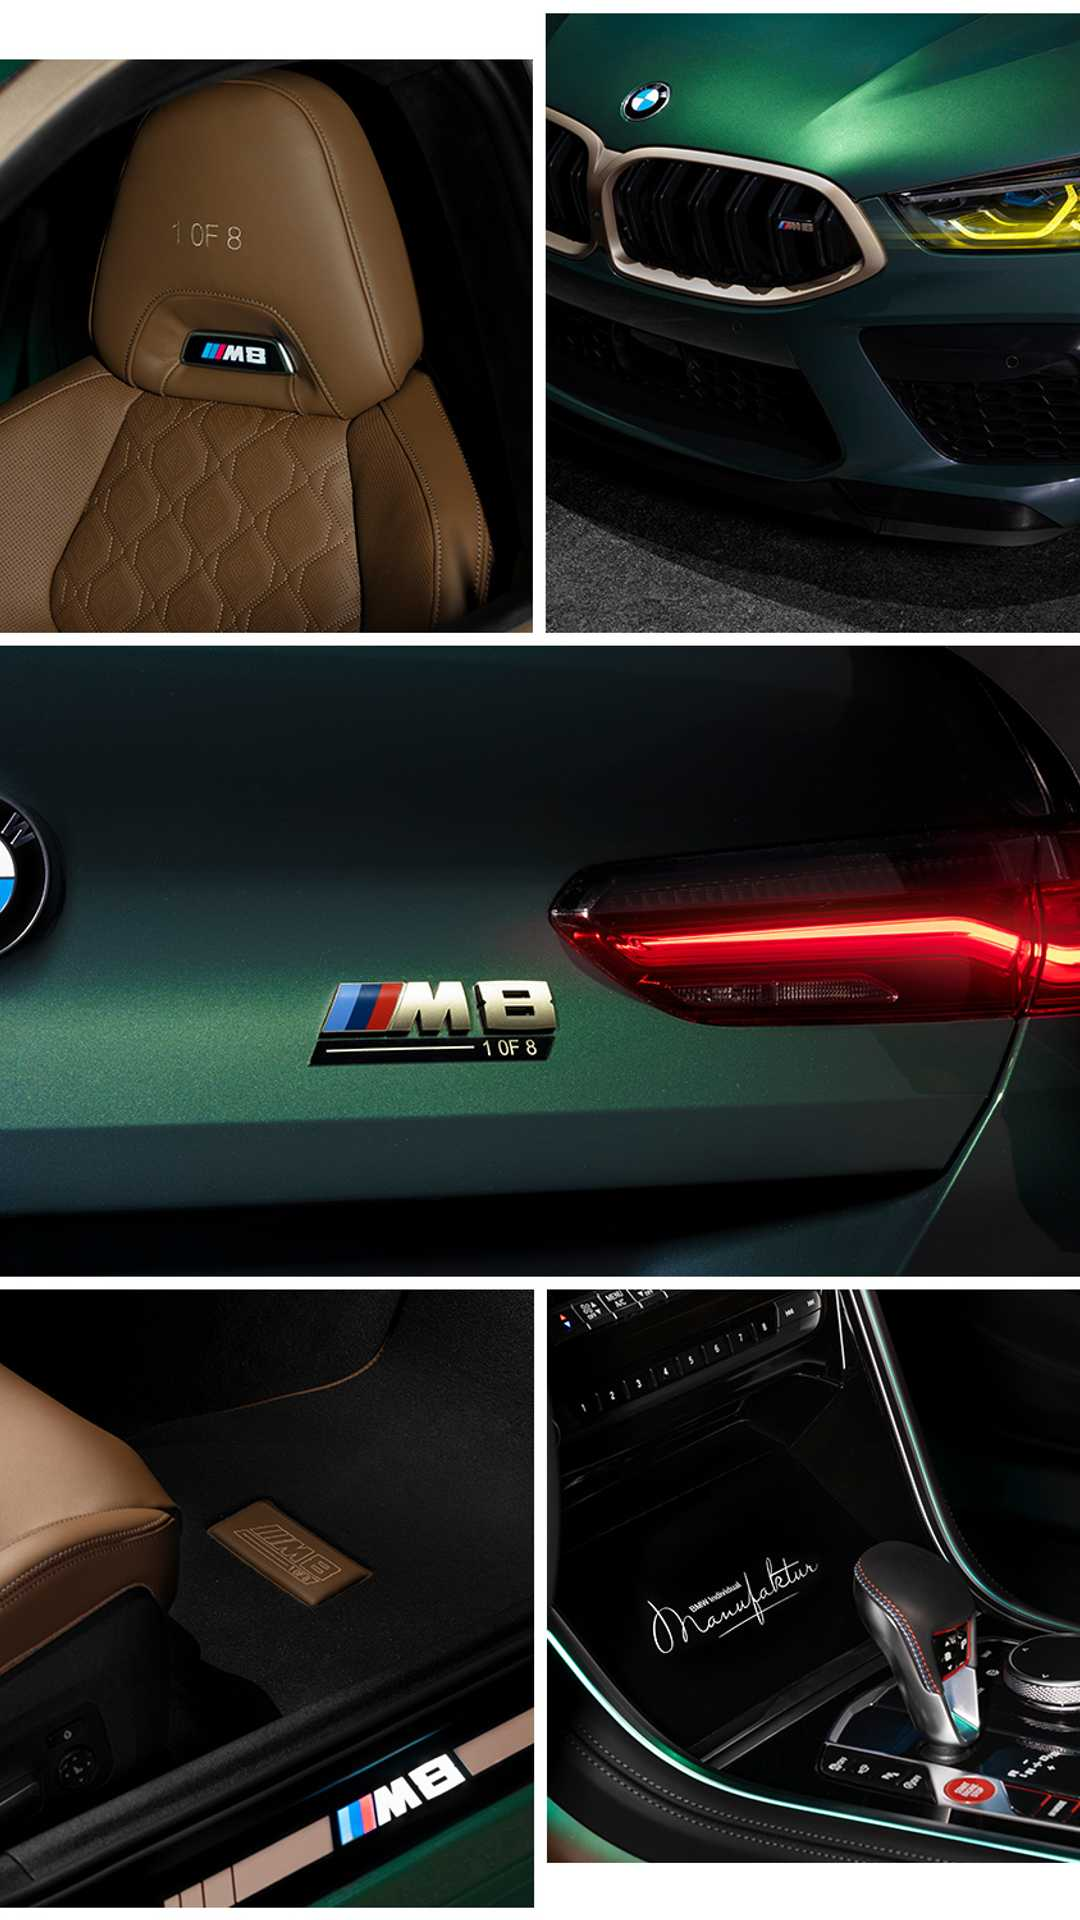 bmw-m8-gran-coupe-first-edition-8-of-8-7